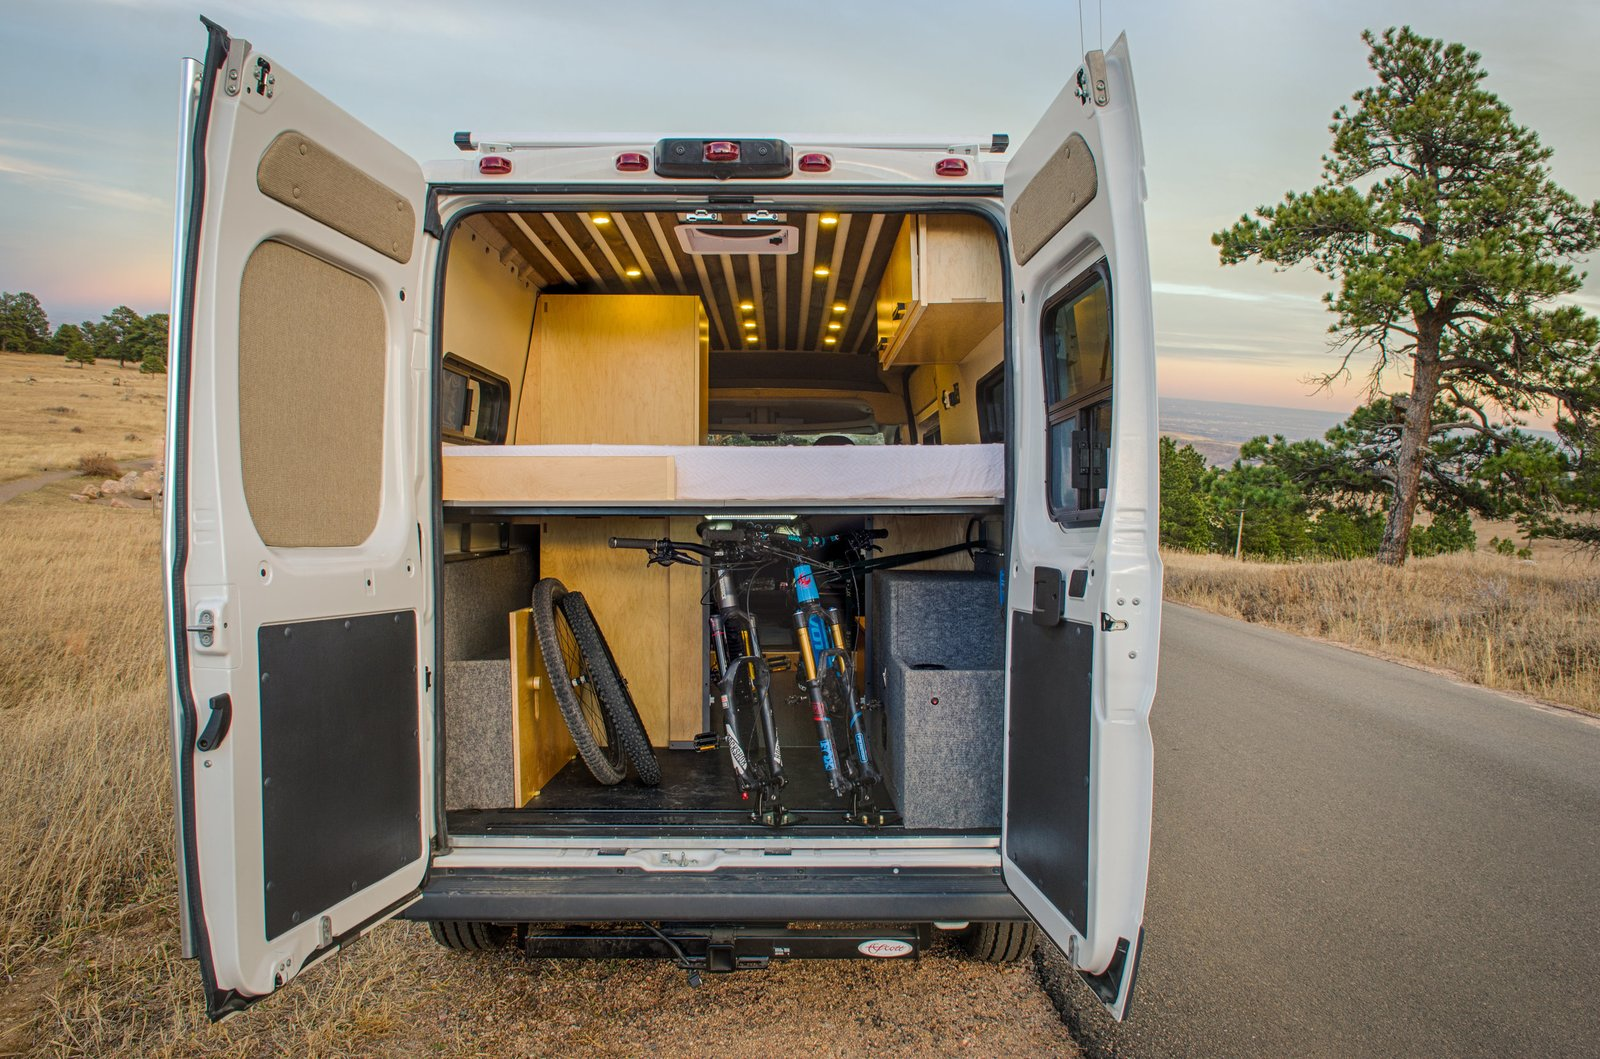 Exterior and Camper Building Type In addition to its gorgeous interiors, the model boasts 300AH of Battleborn lithium battery power storage, a bluetooth enabled Smartsolar controller, a 2000W Go-Power inverter, and room for two mountain bikes.      Photo 12 of 14 in 7 Van Conversion Companies That Will Do the Legwork For You